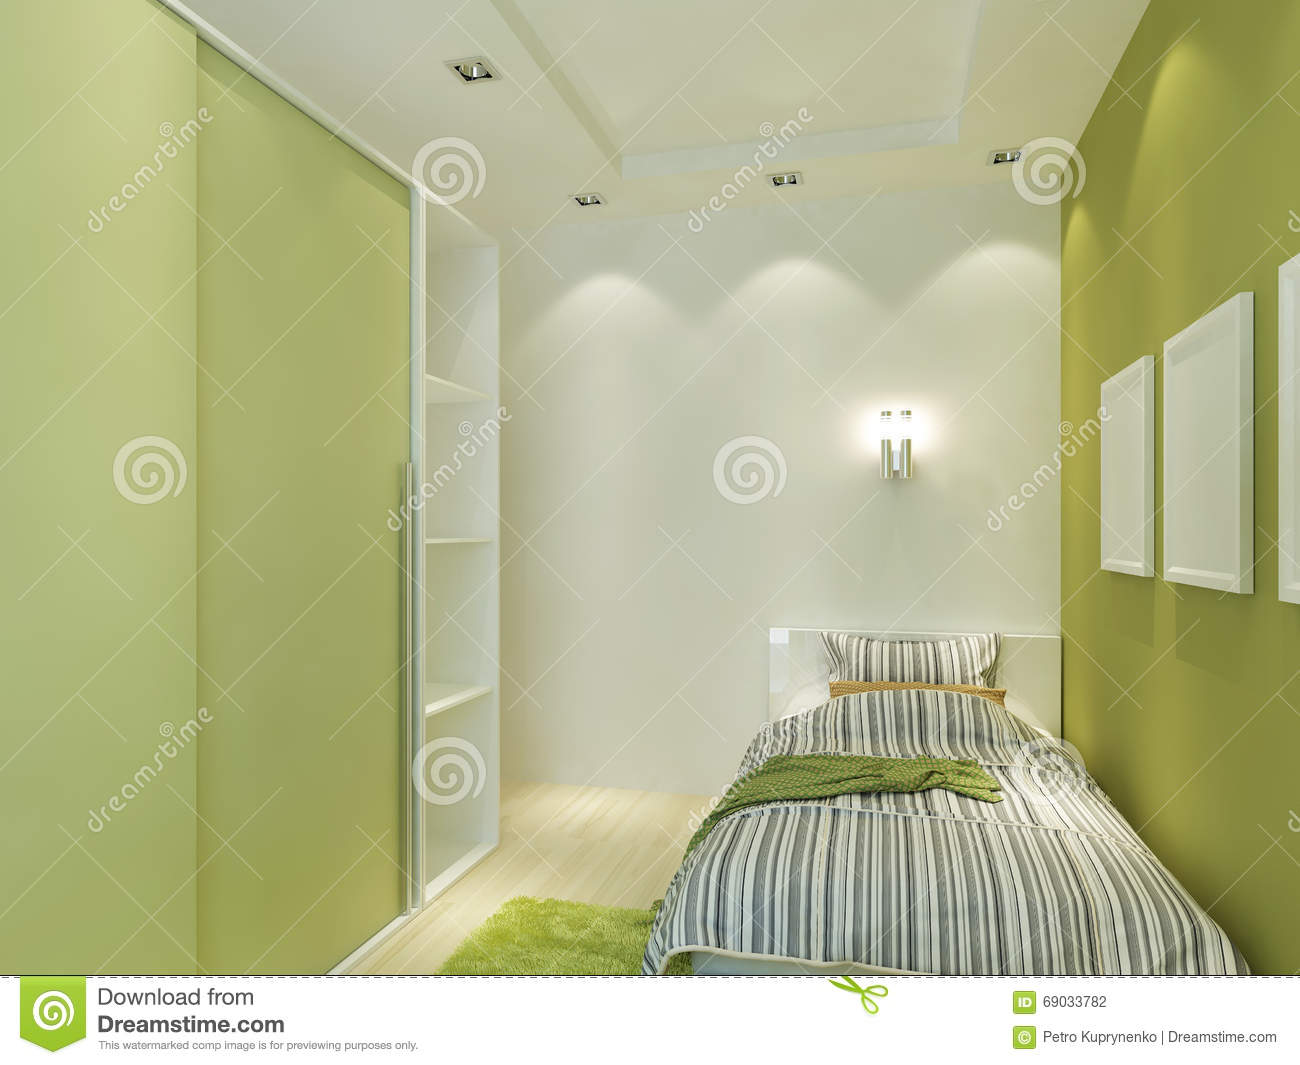 Modern Children s Room With False Ceiling And Spotlights Stock Illustration Image